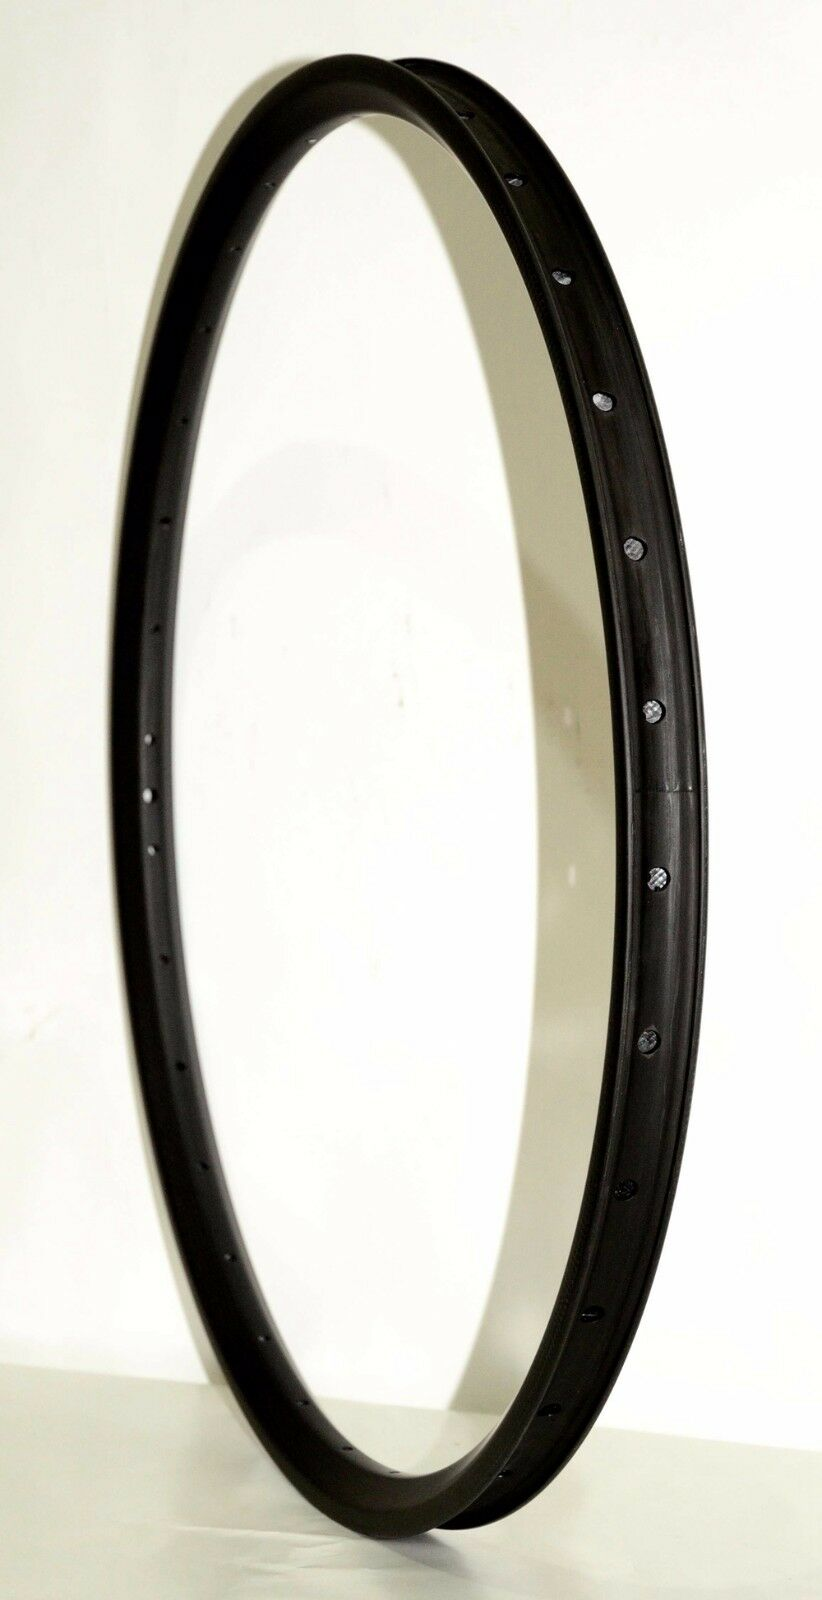 29inch Full carbon  mtb rims,29er hookless mountain bike AM DH rim tubeless ready  cheap and top quality